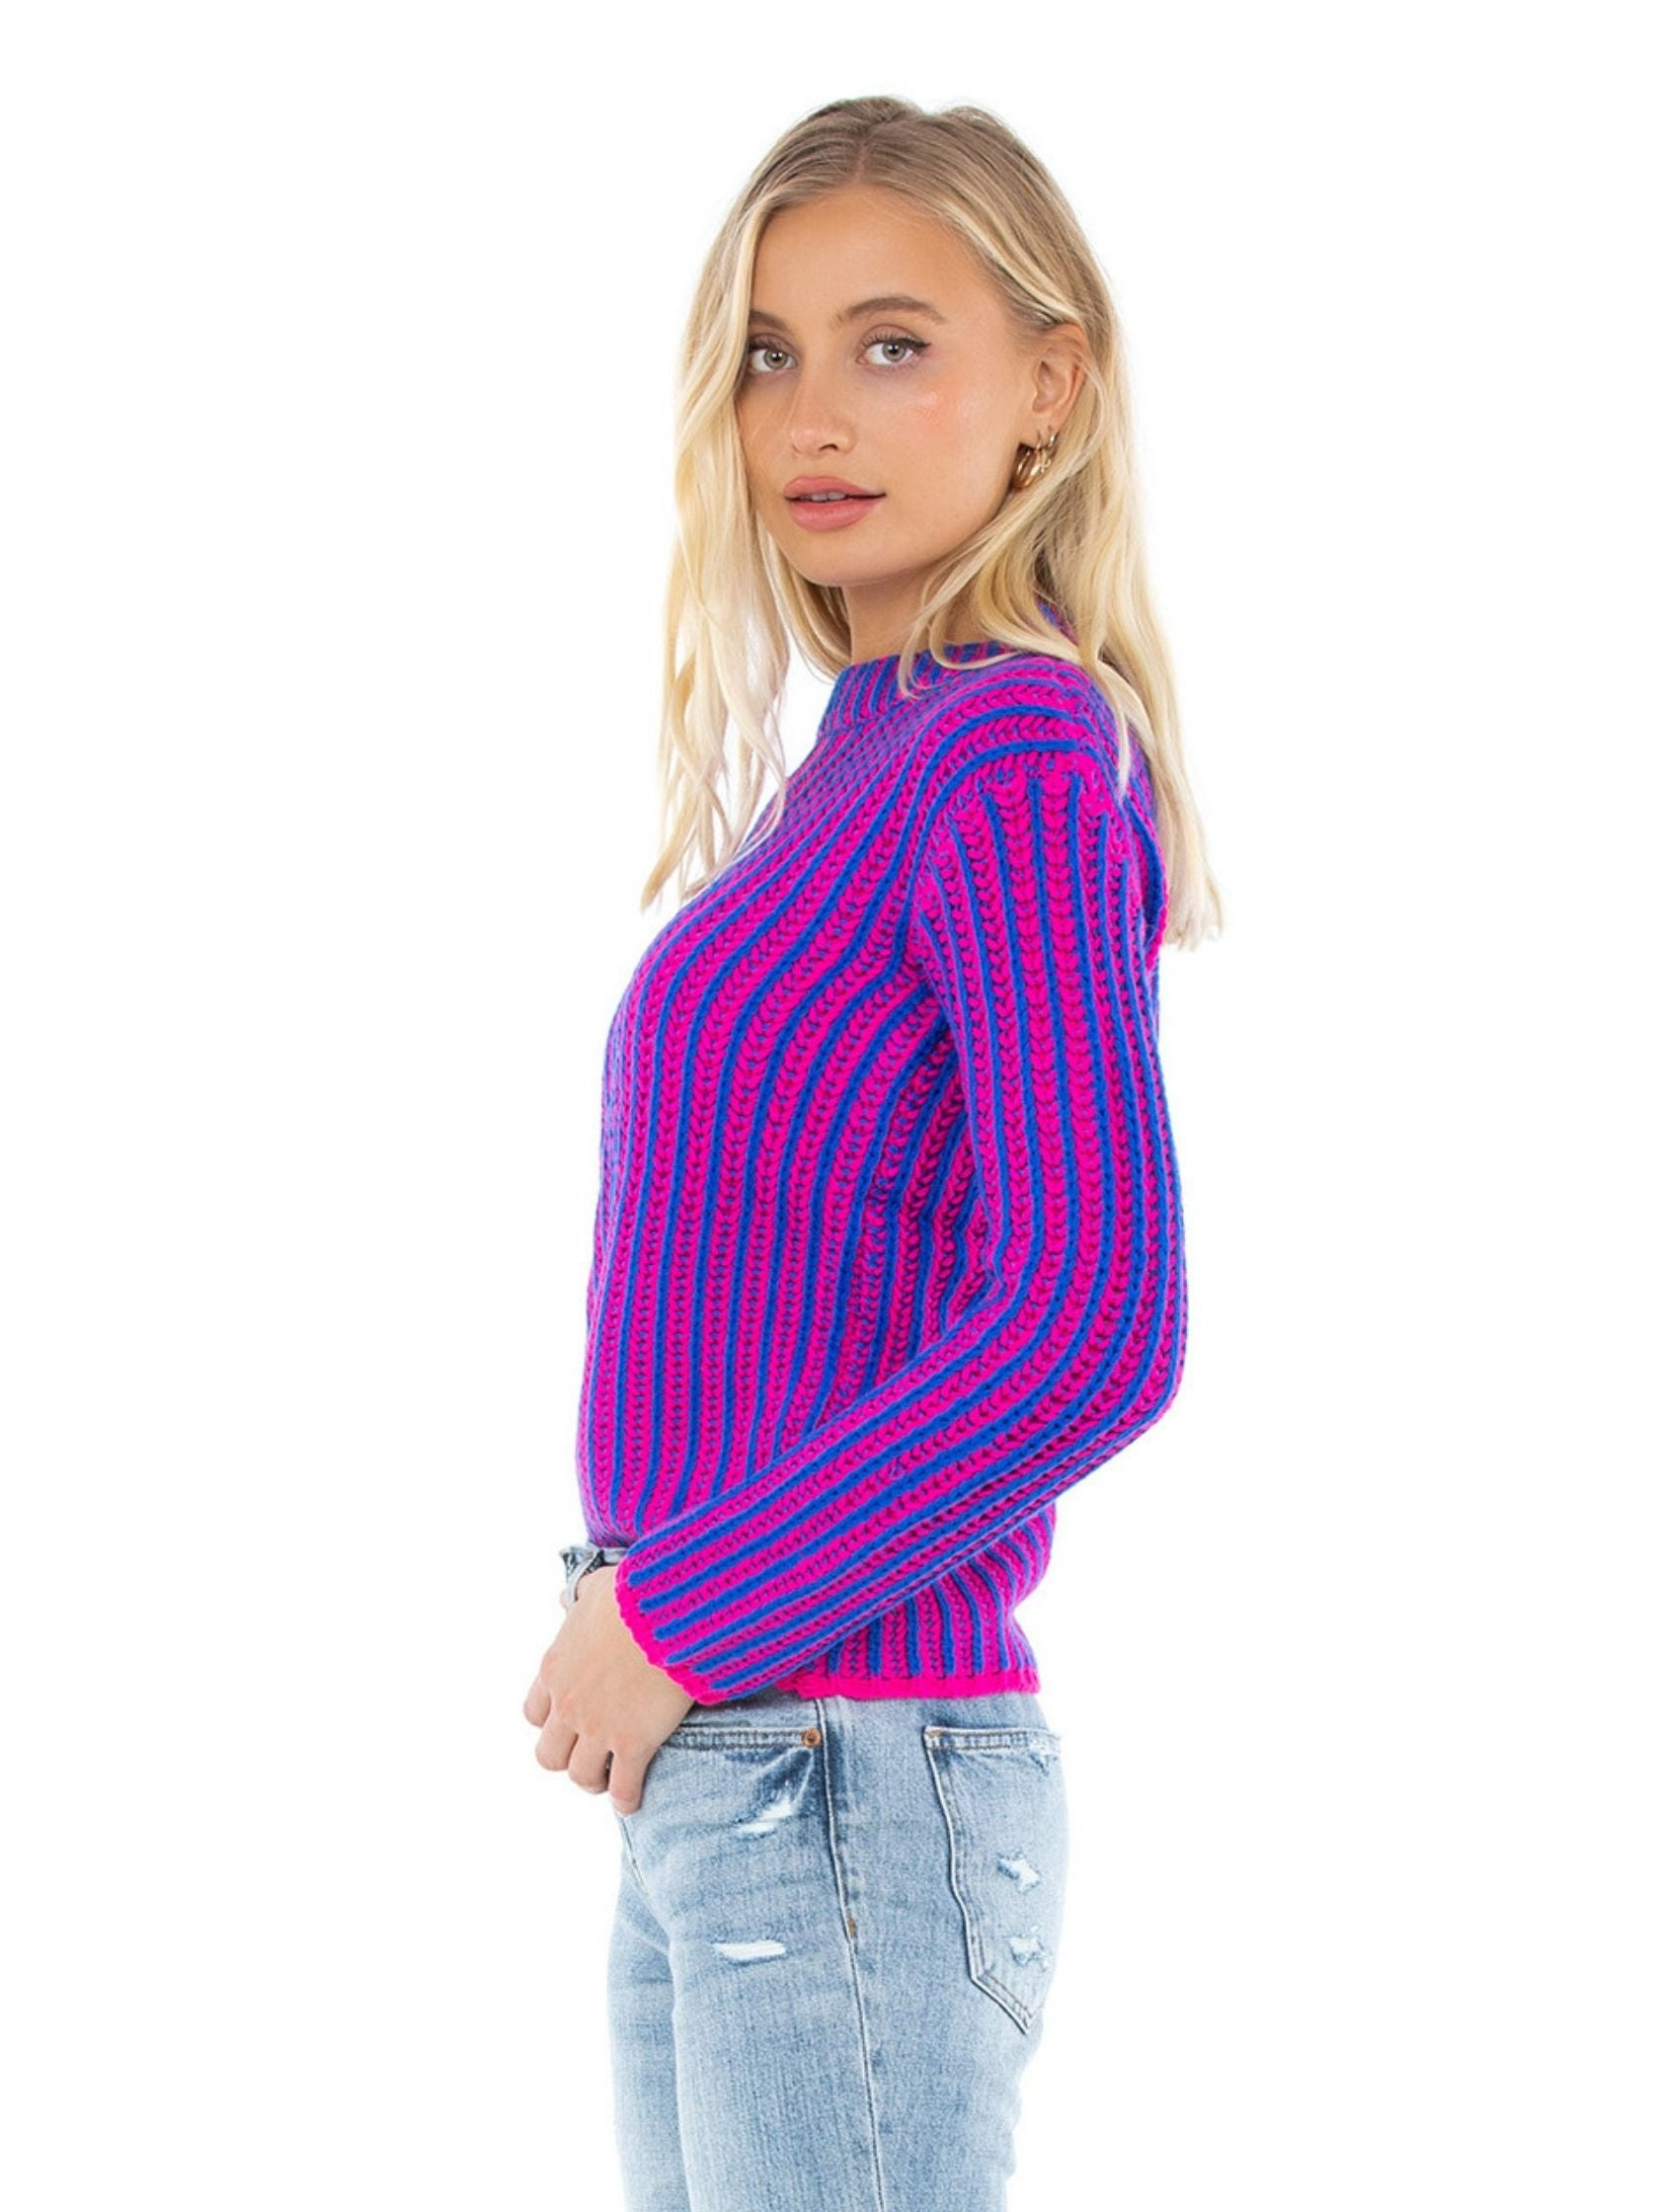 Women wearing a sweater rental from Endless Rose called Stripe Mix Color Sweater